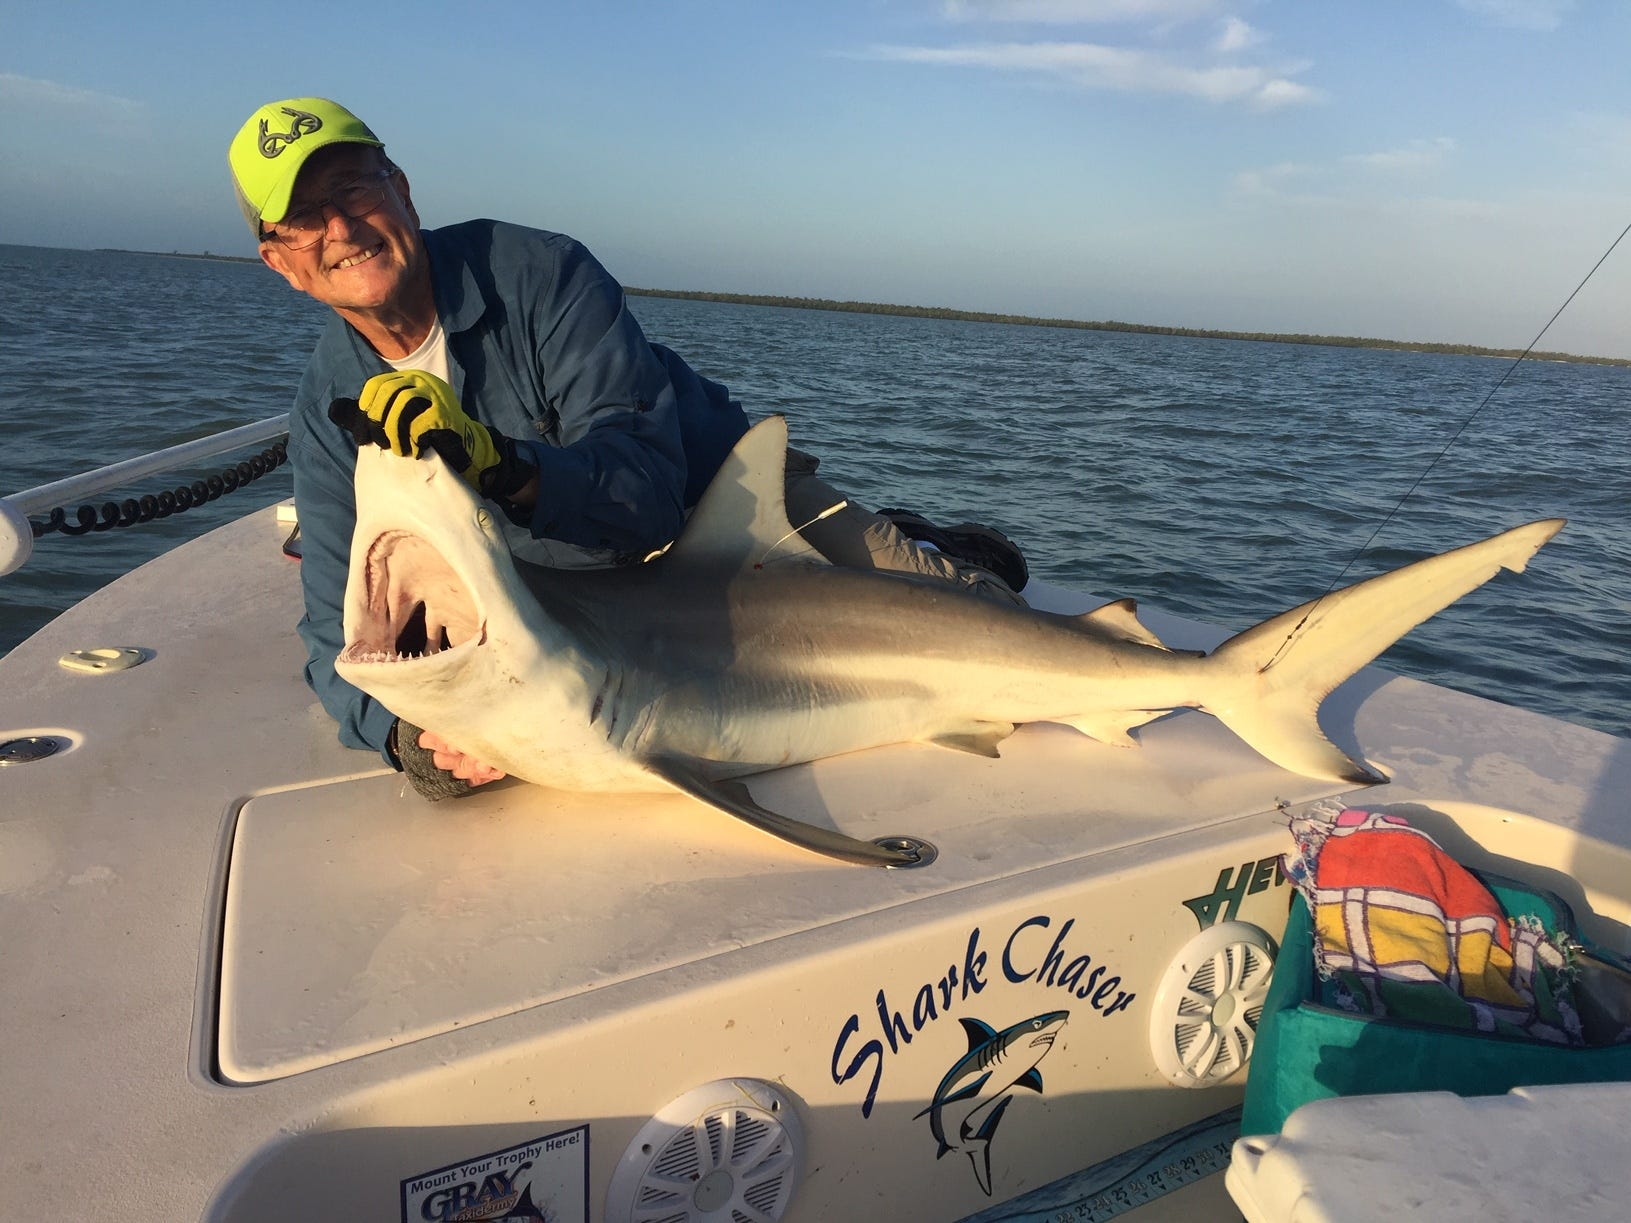 John Budnick with a 5 1/2-foot blacktip shark caught, tagged and released off Marco Island using ladyfish for bait.